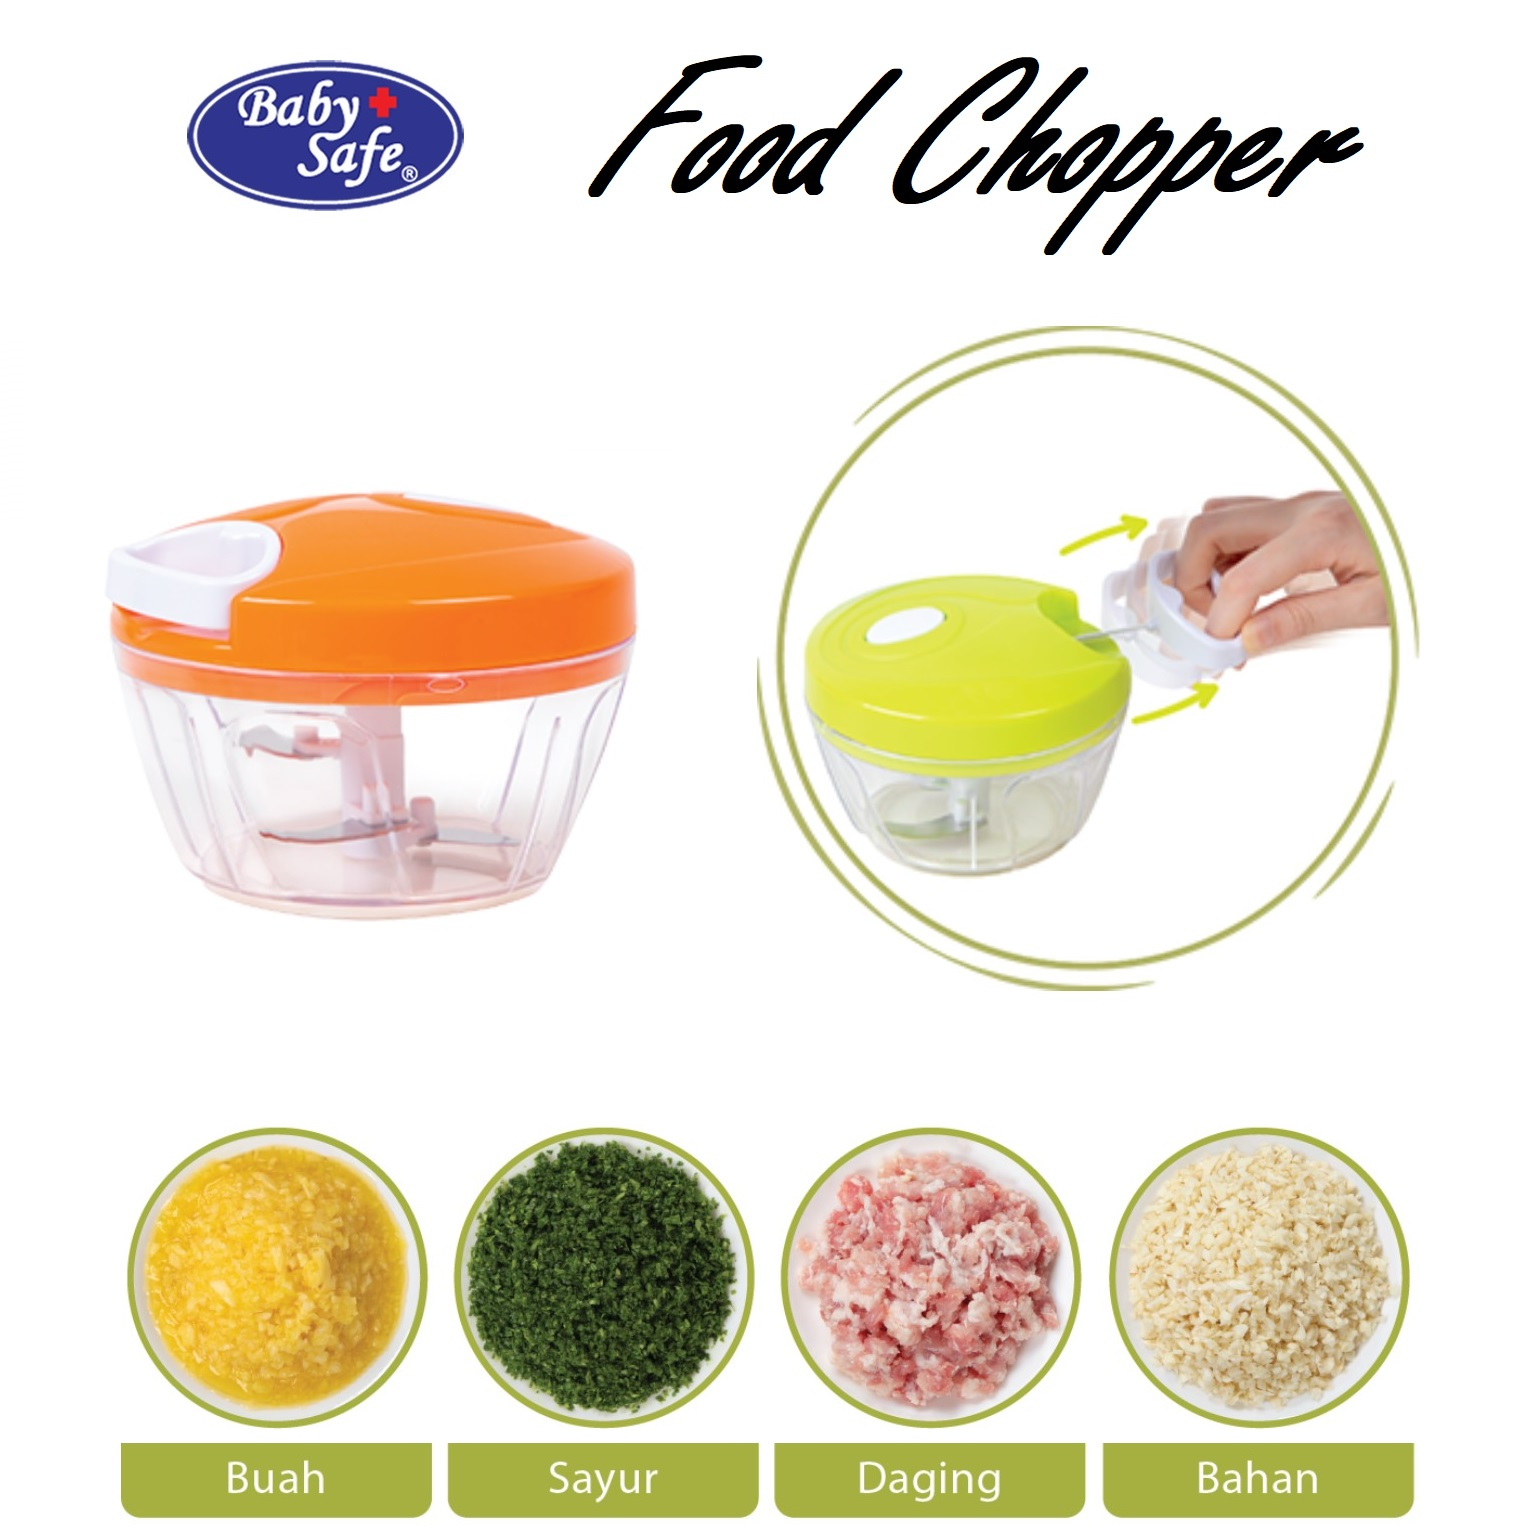 Baby Safe Food Chopper